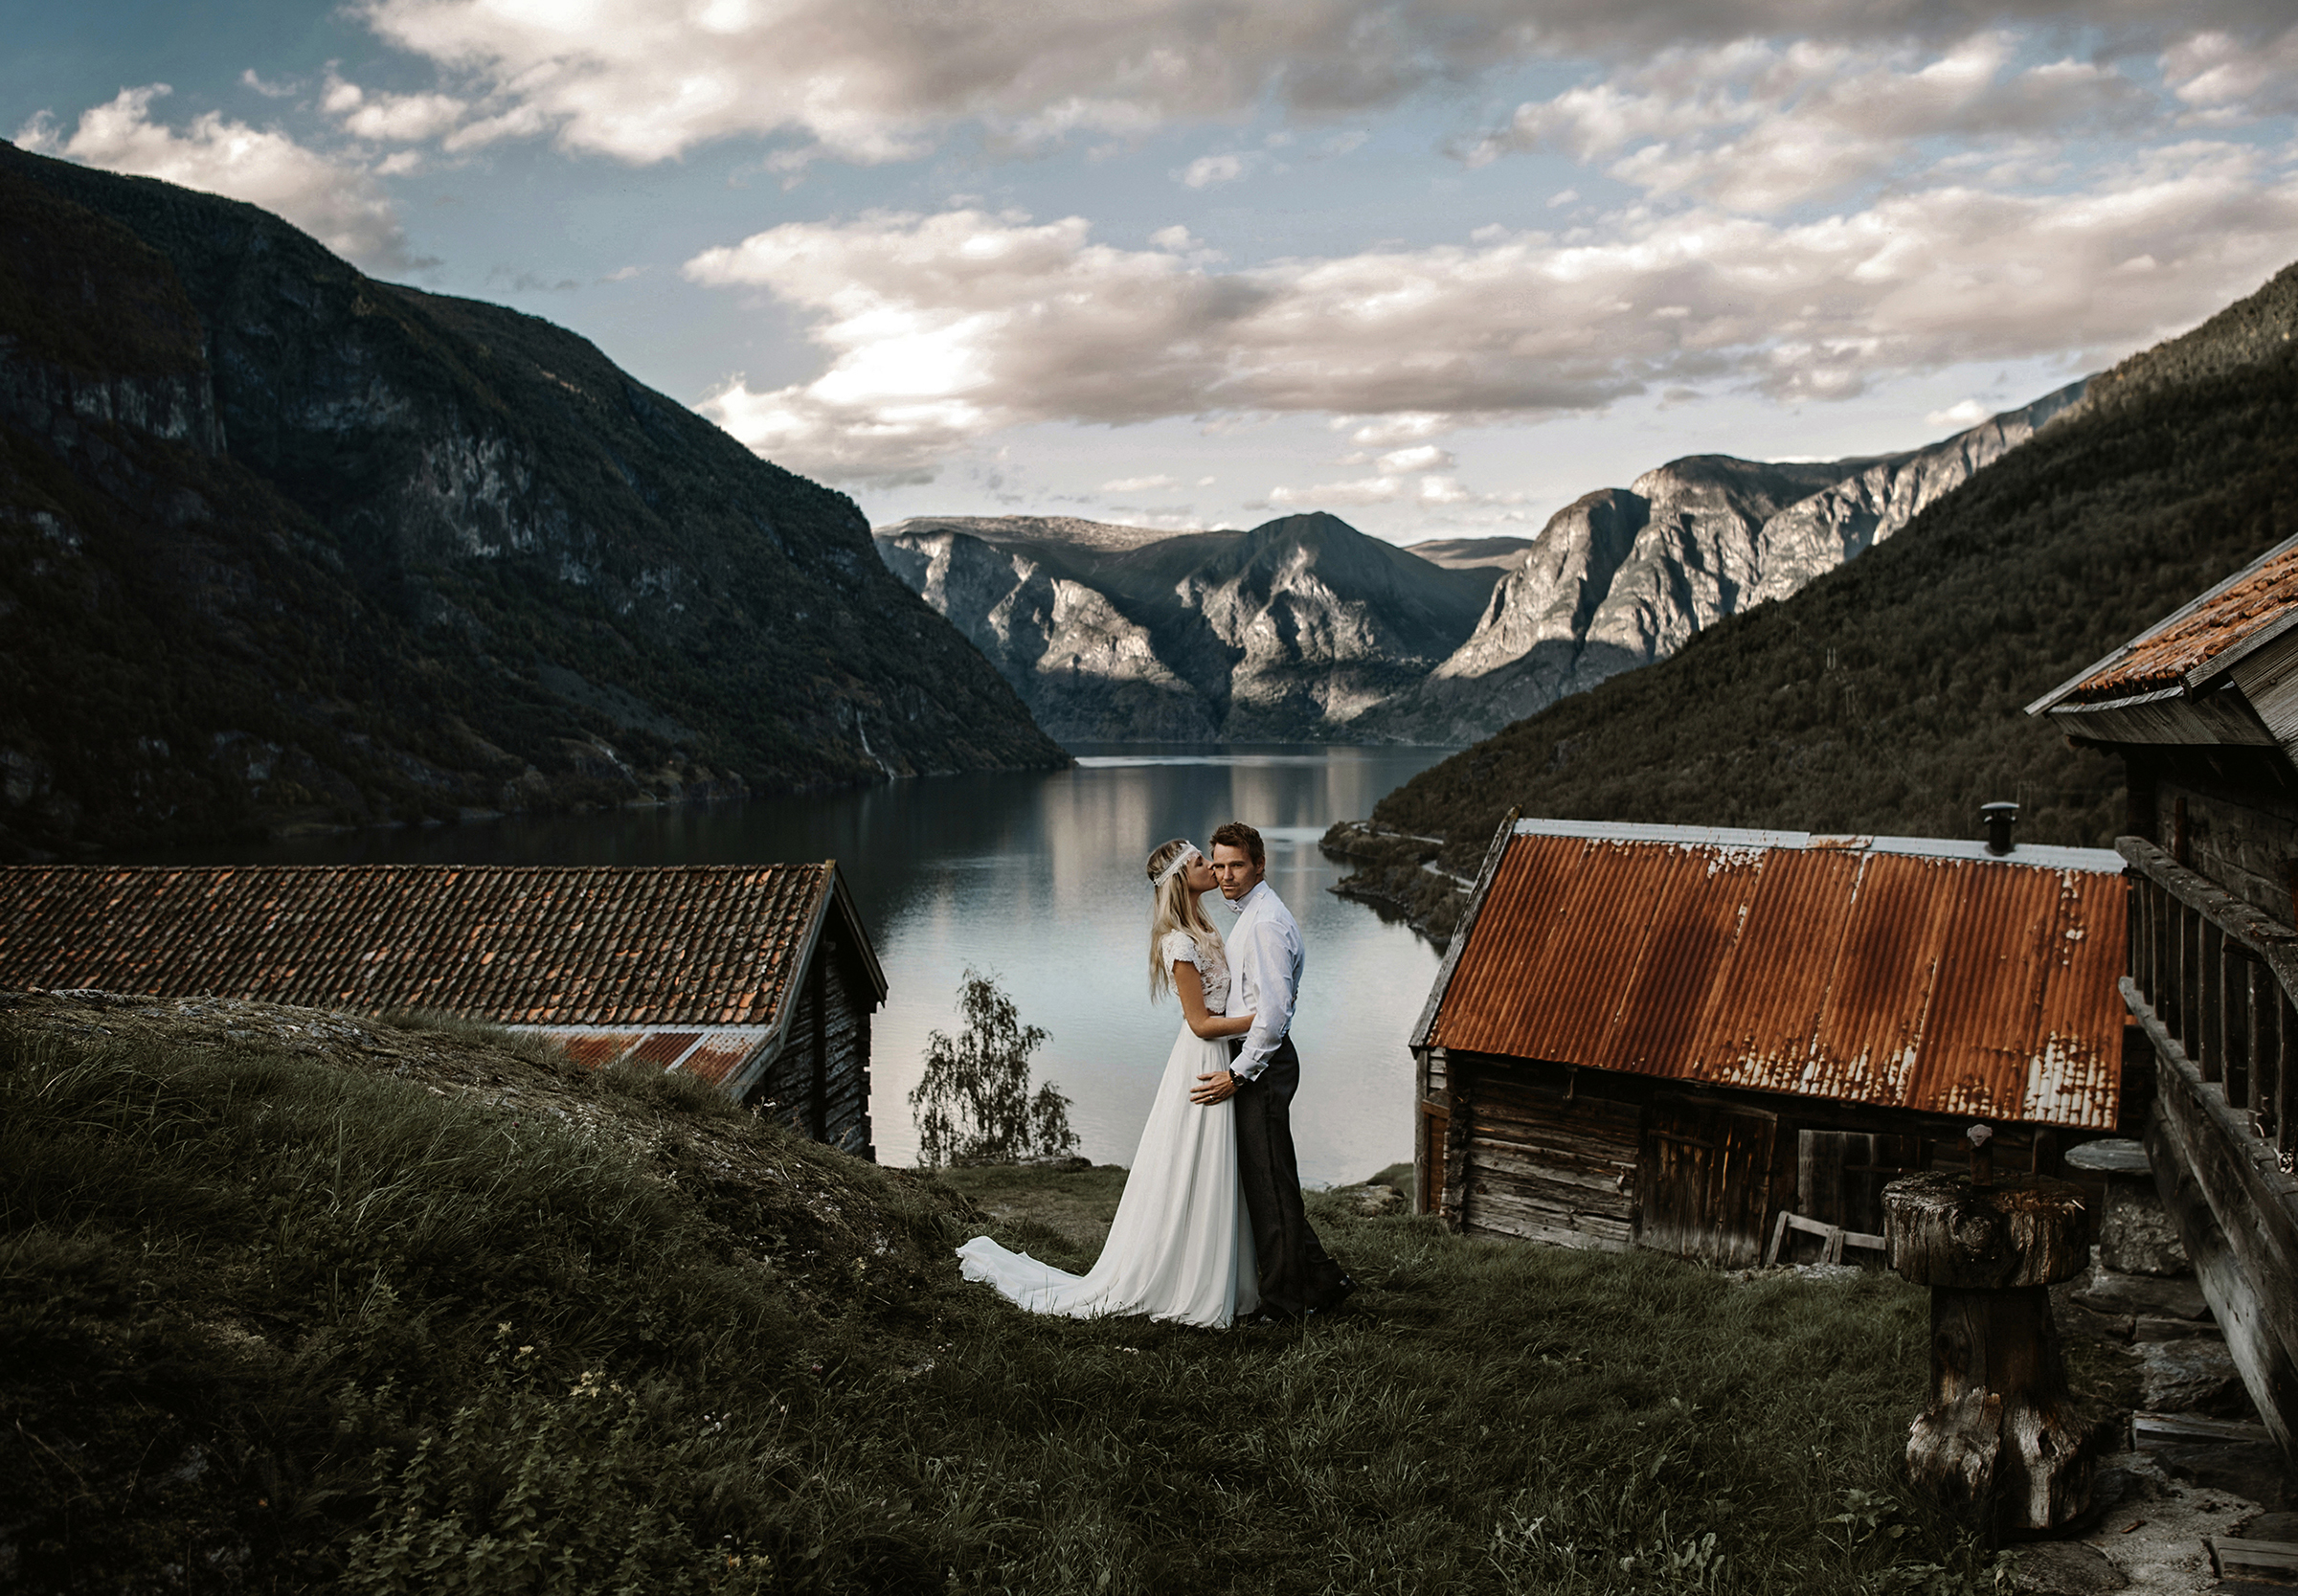 couple-against-lake-and-mountains-and-dramatic-mountain-scenery-froydis-